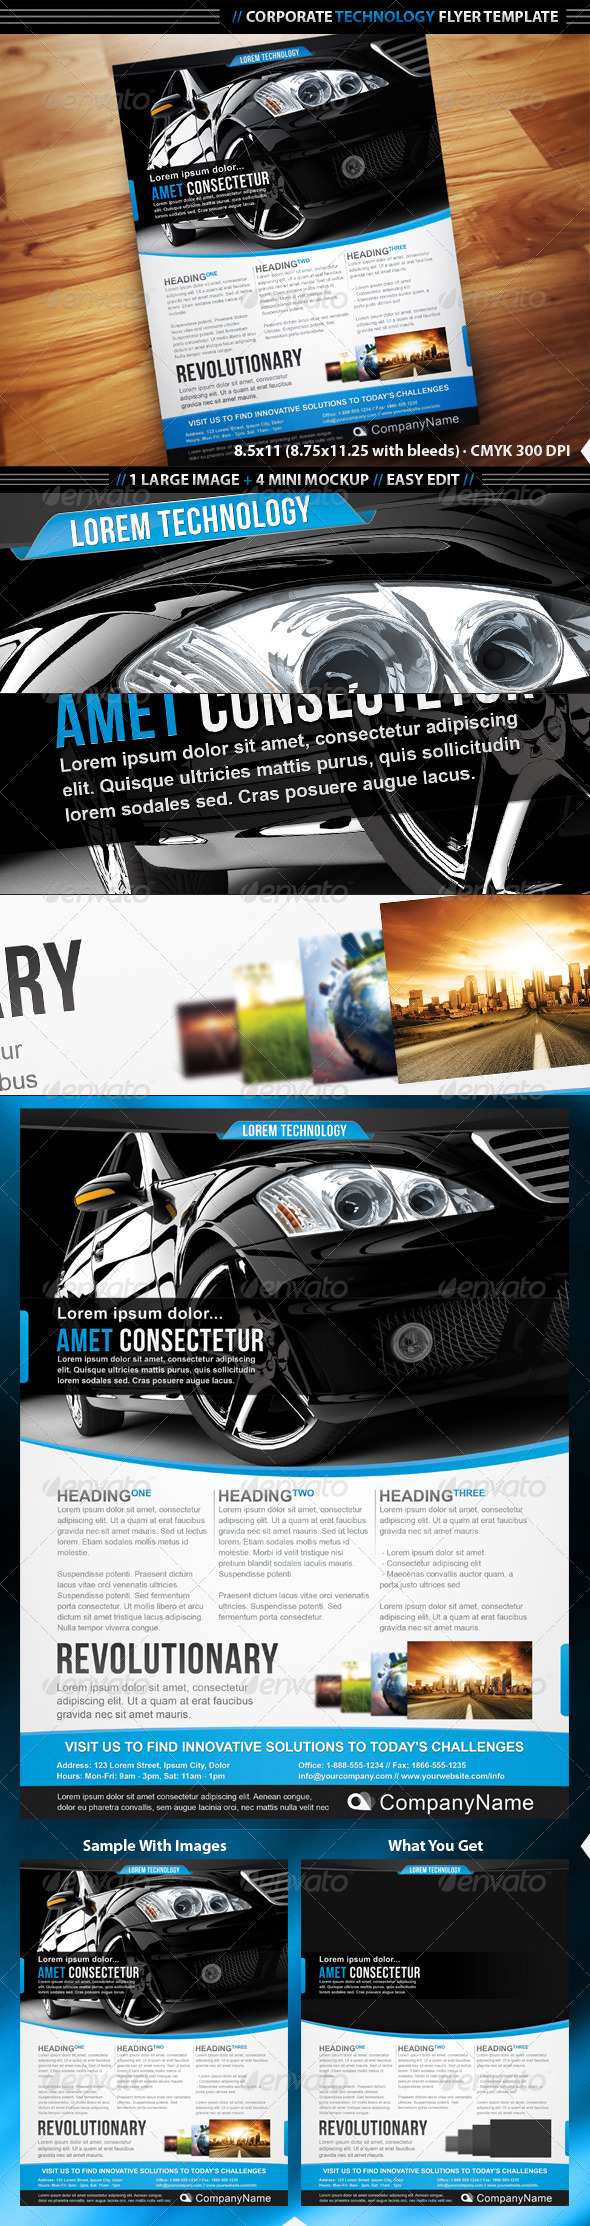 GraphicRiver Corporate Technology Flyer Template 1682683